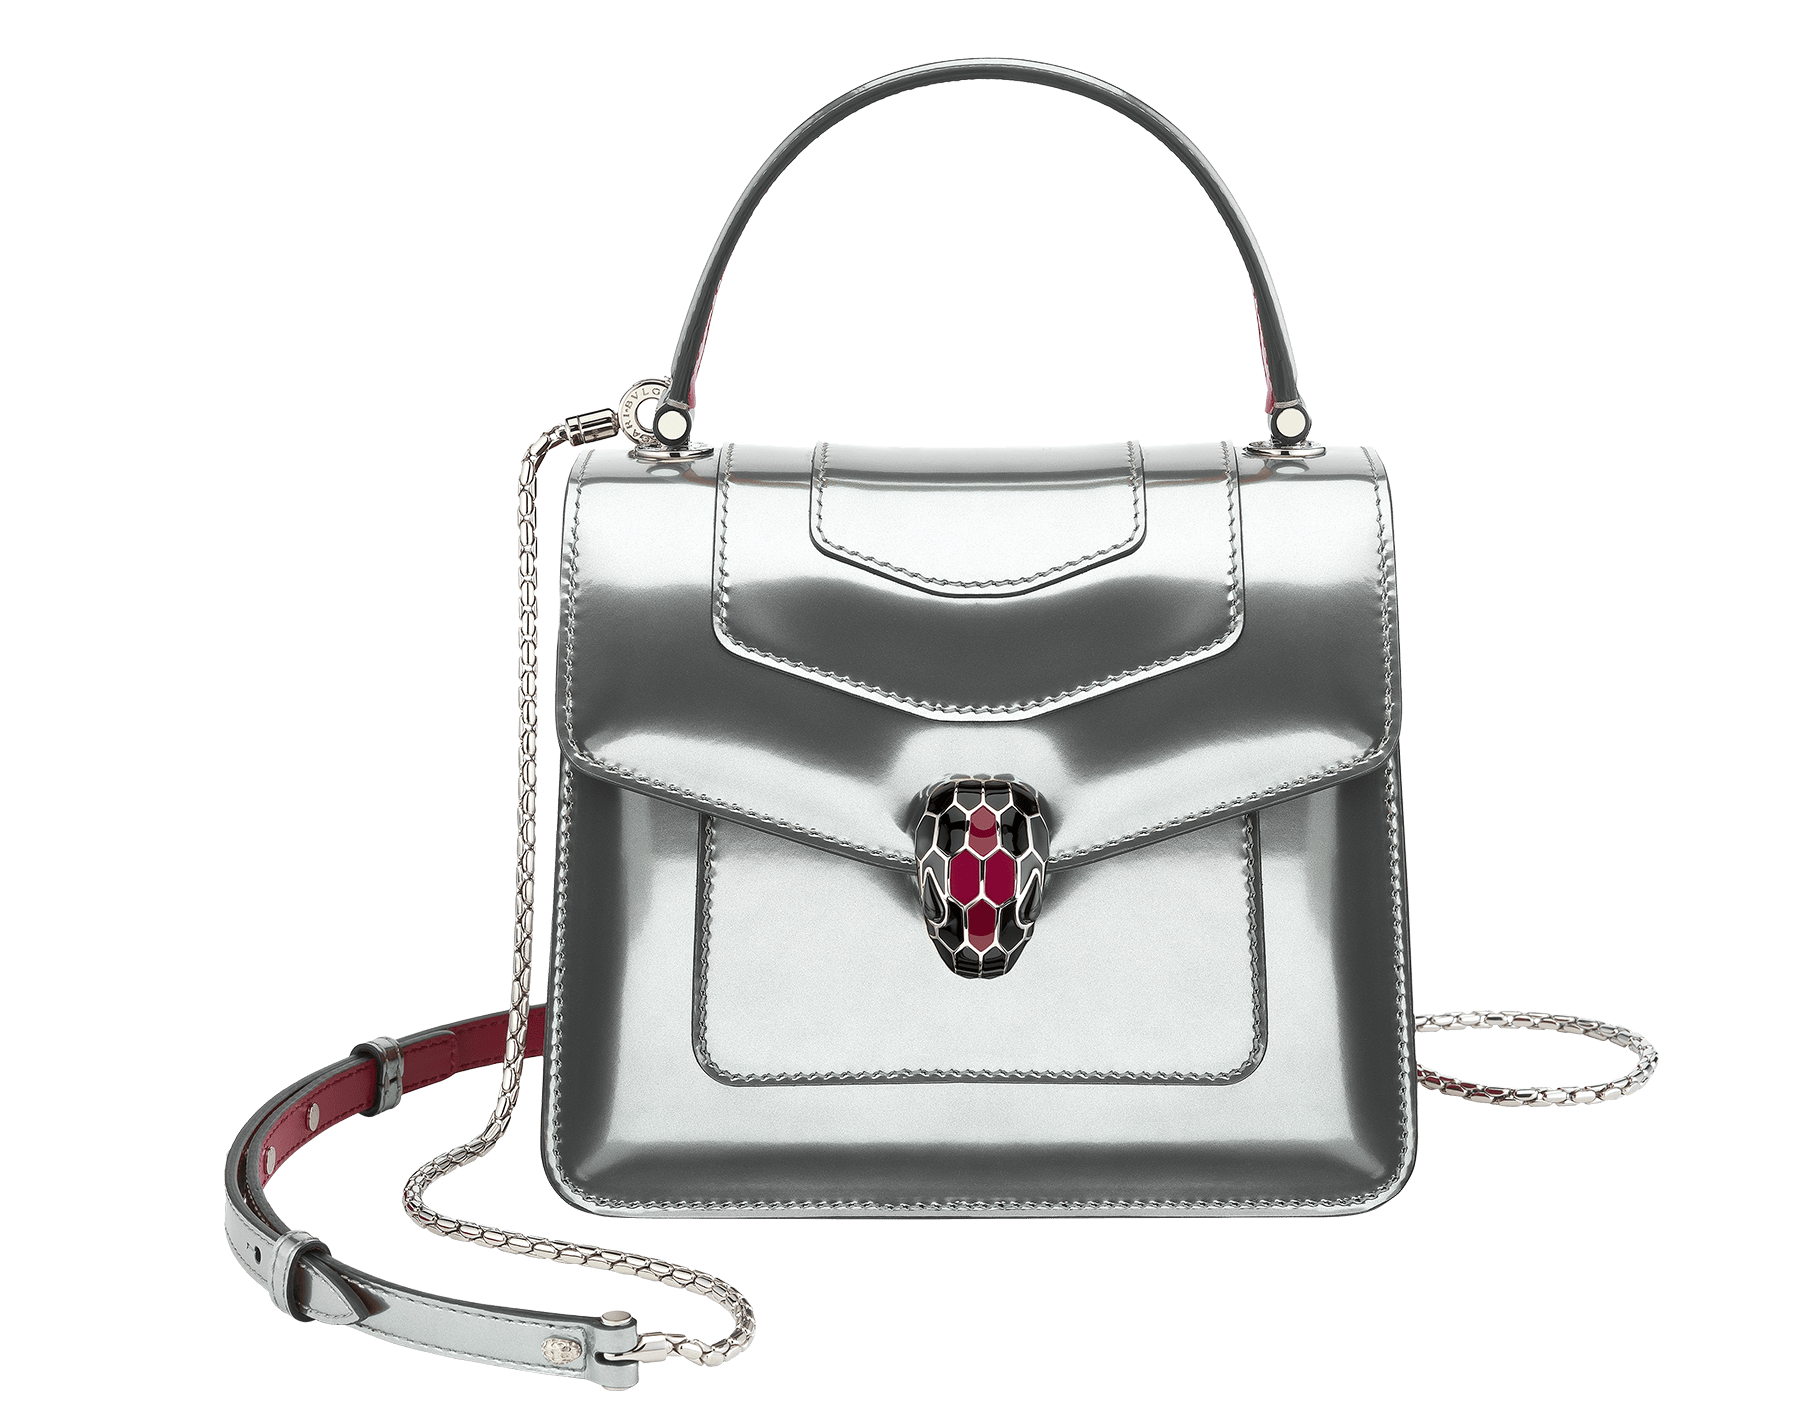 """Serpenti Forever"" crossbody bag in silver brushed metallic calf leather body and jazzy tourmaline calf leather sides. Iconic snakehead closure in palladium plated brass enriched with black and jazzy tourmaline enamel and black onyx eyes. 287122 image 1"